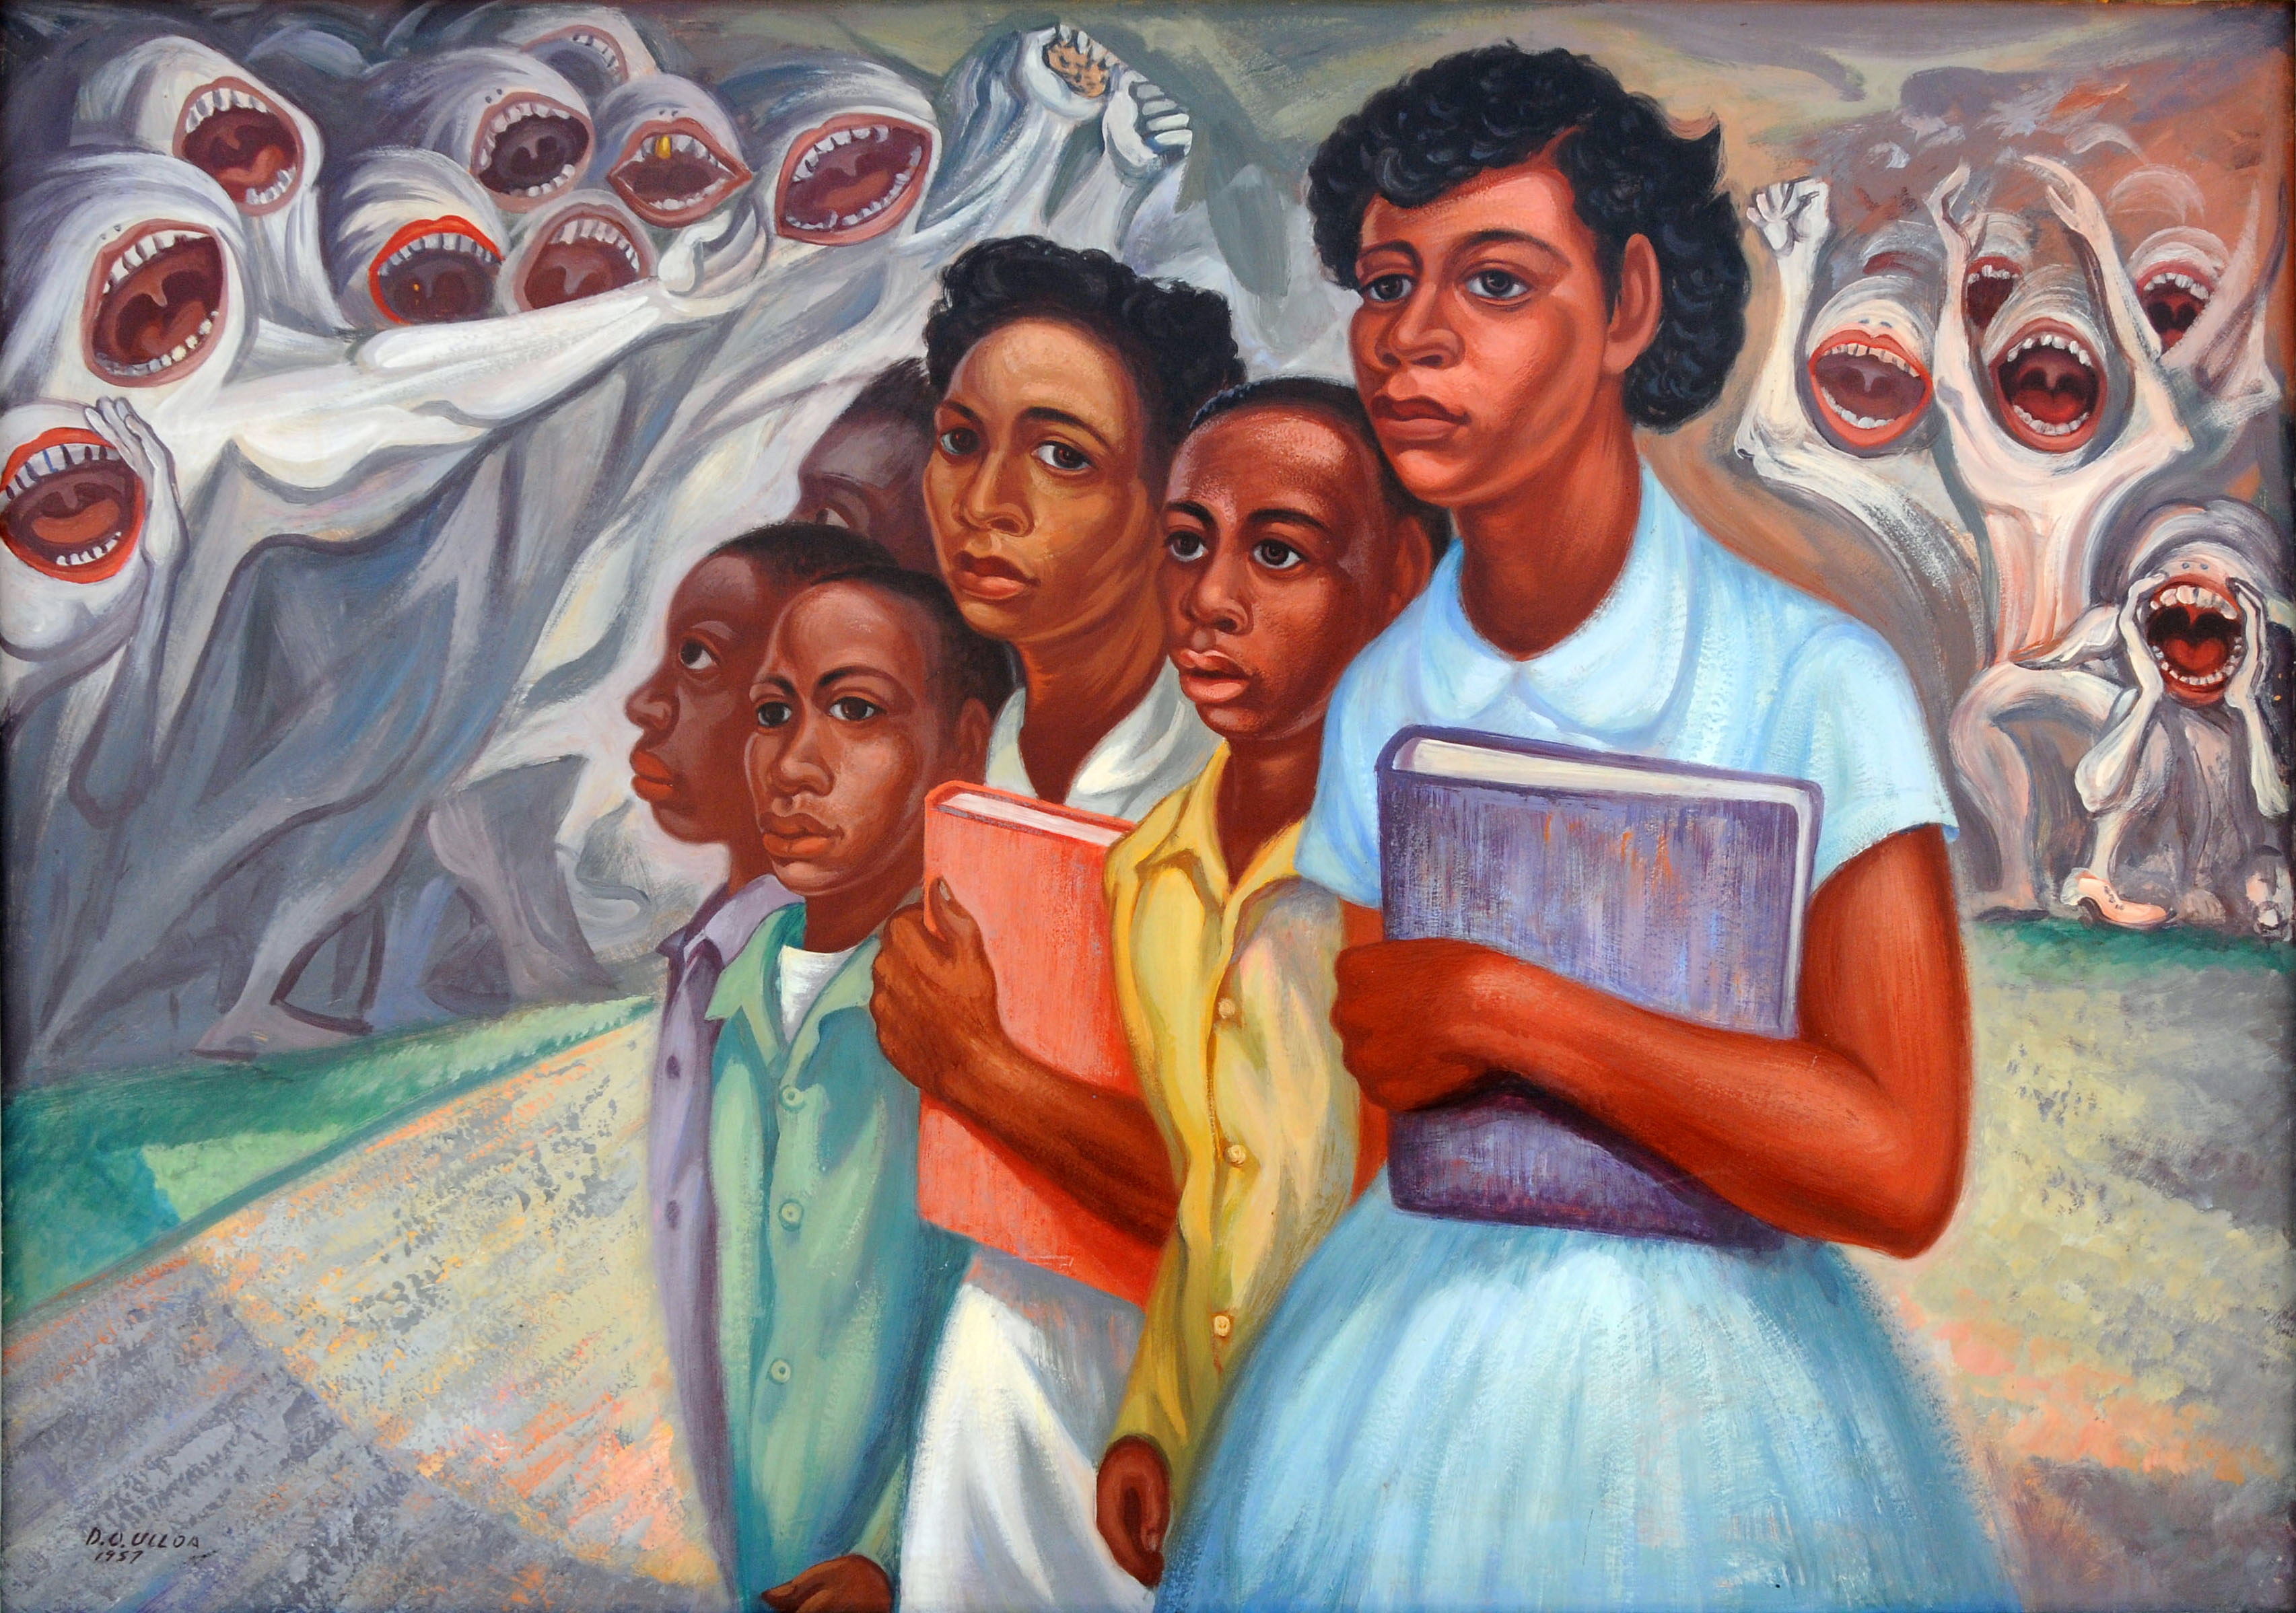 Racism/Incident at Little Rock - Domingo Ulloa, 1957